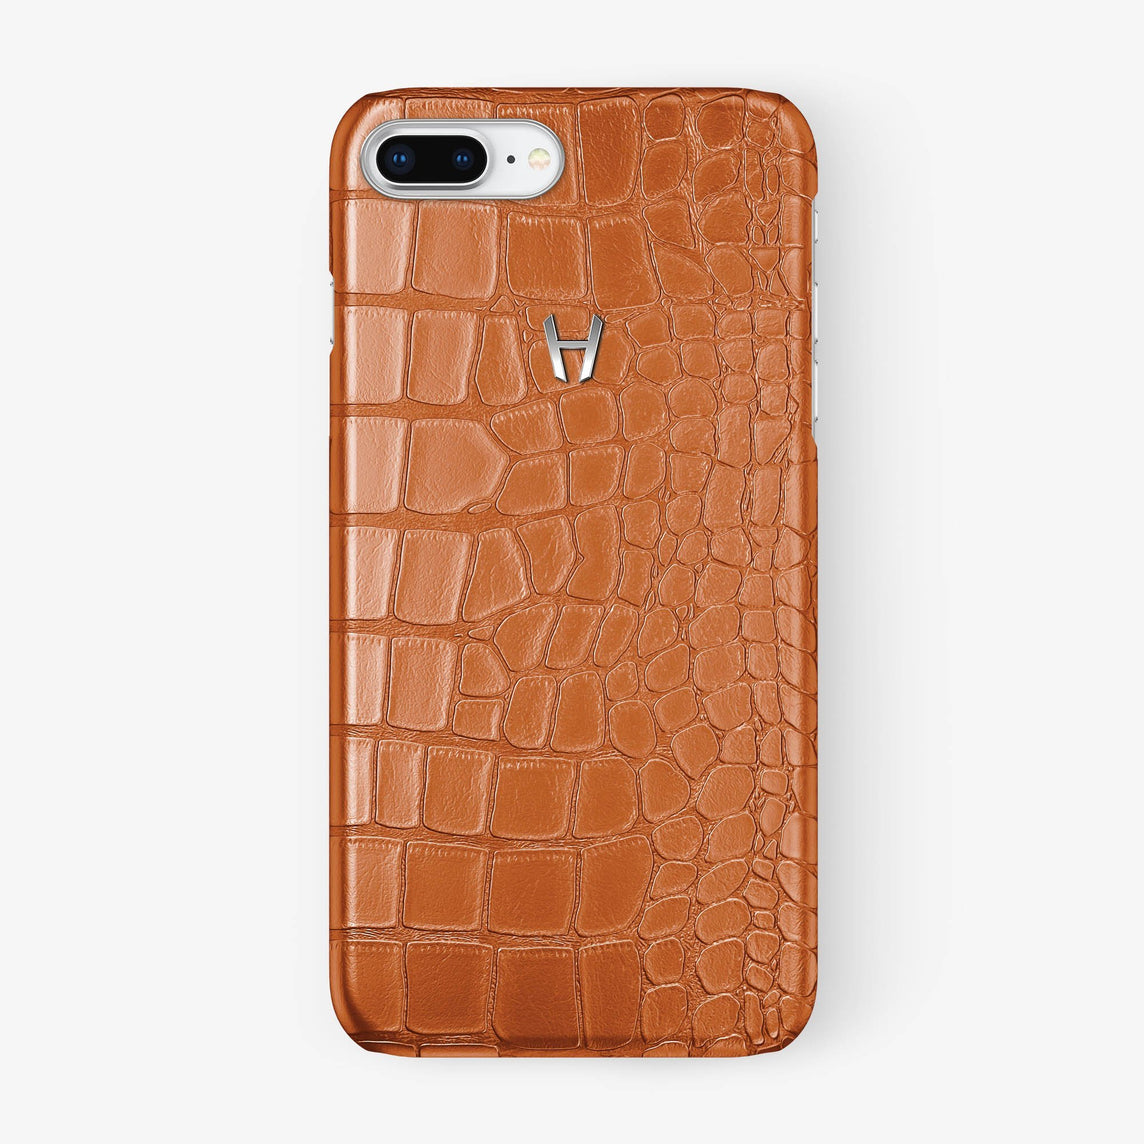 Alligator [iPhone Case] [model:iphone-7p-8p-case] [colour:orange] [finishing:stainless-steel] - Hadoro